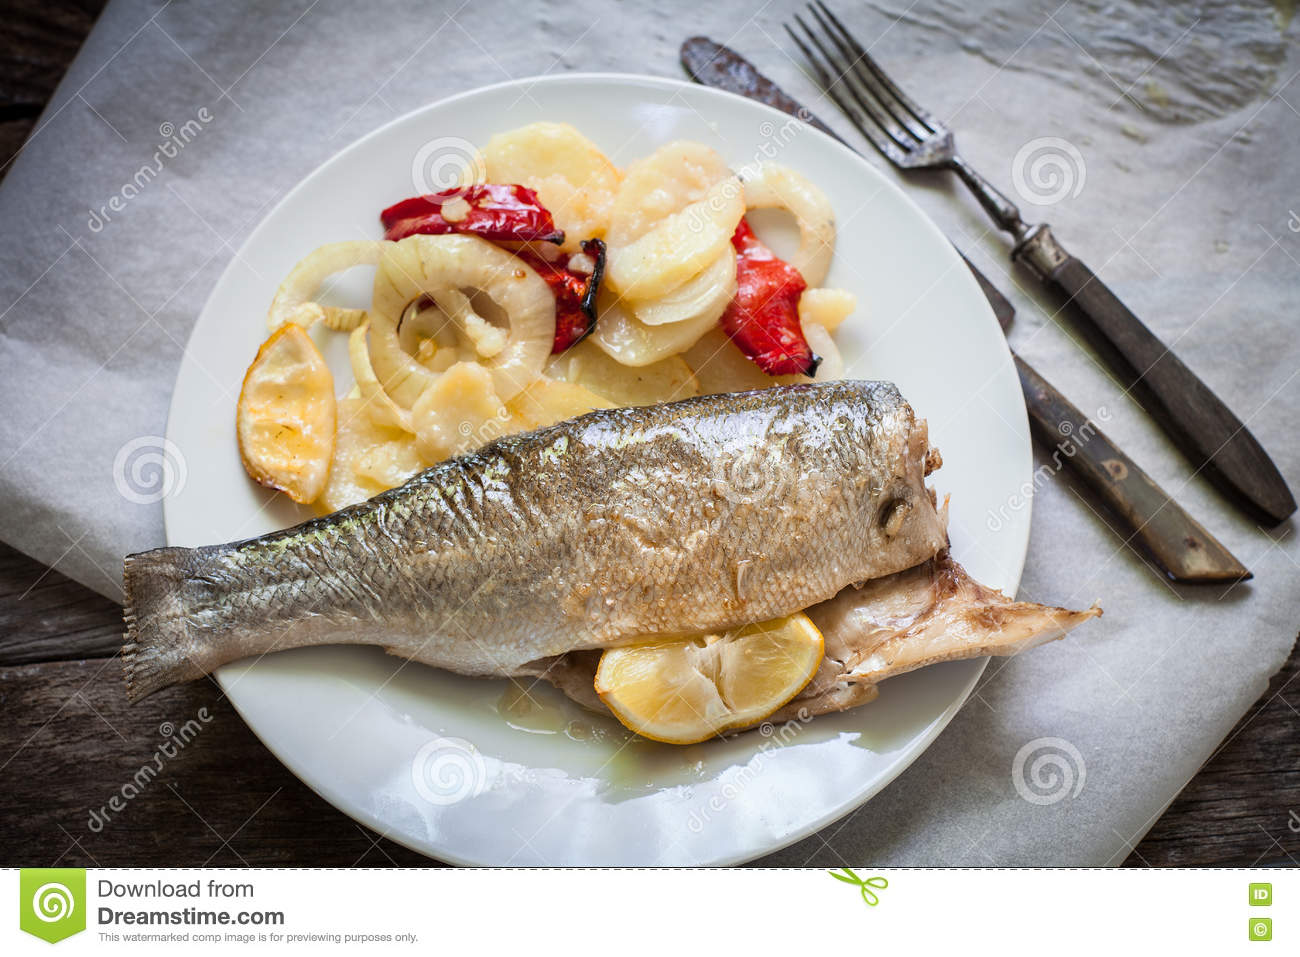 Sea bass baked